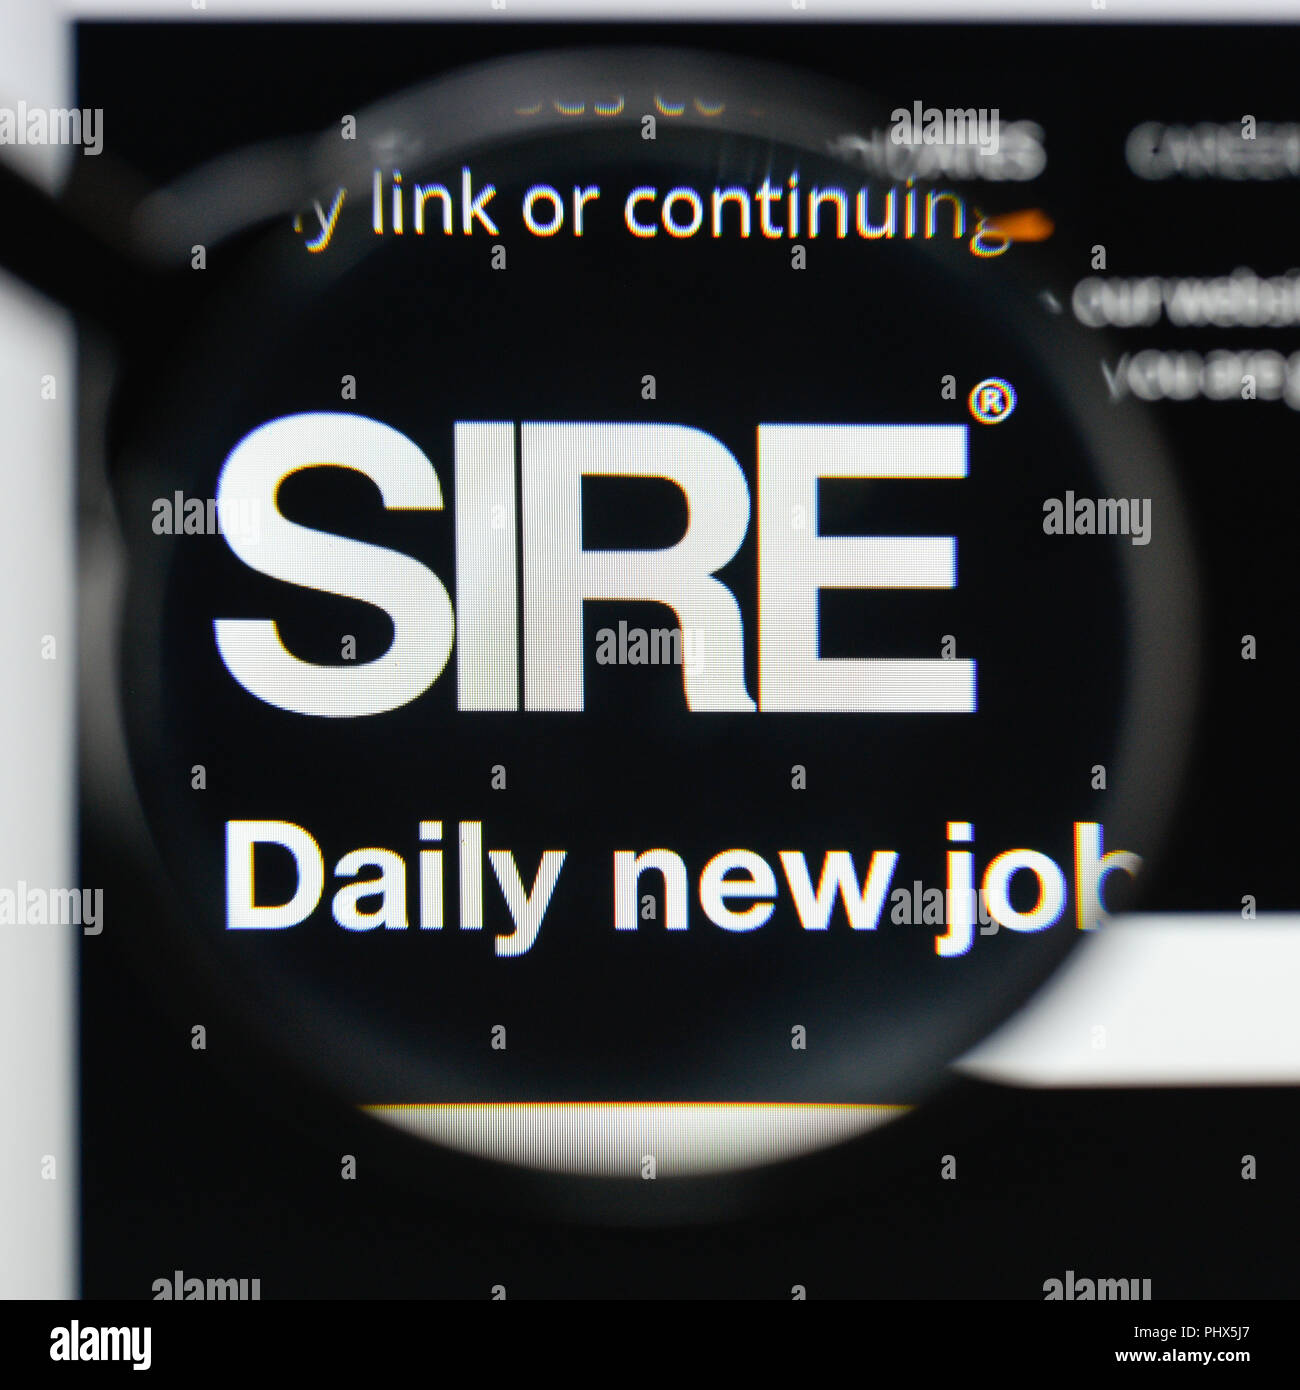 1800af008a7 Milan, Italy - August 20, 2018: SIRE Life Sciences website homepage. SIRE  Life Sciences logo visible.